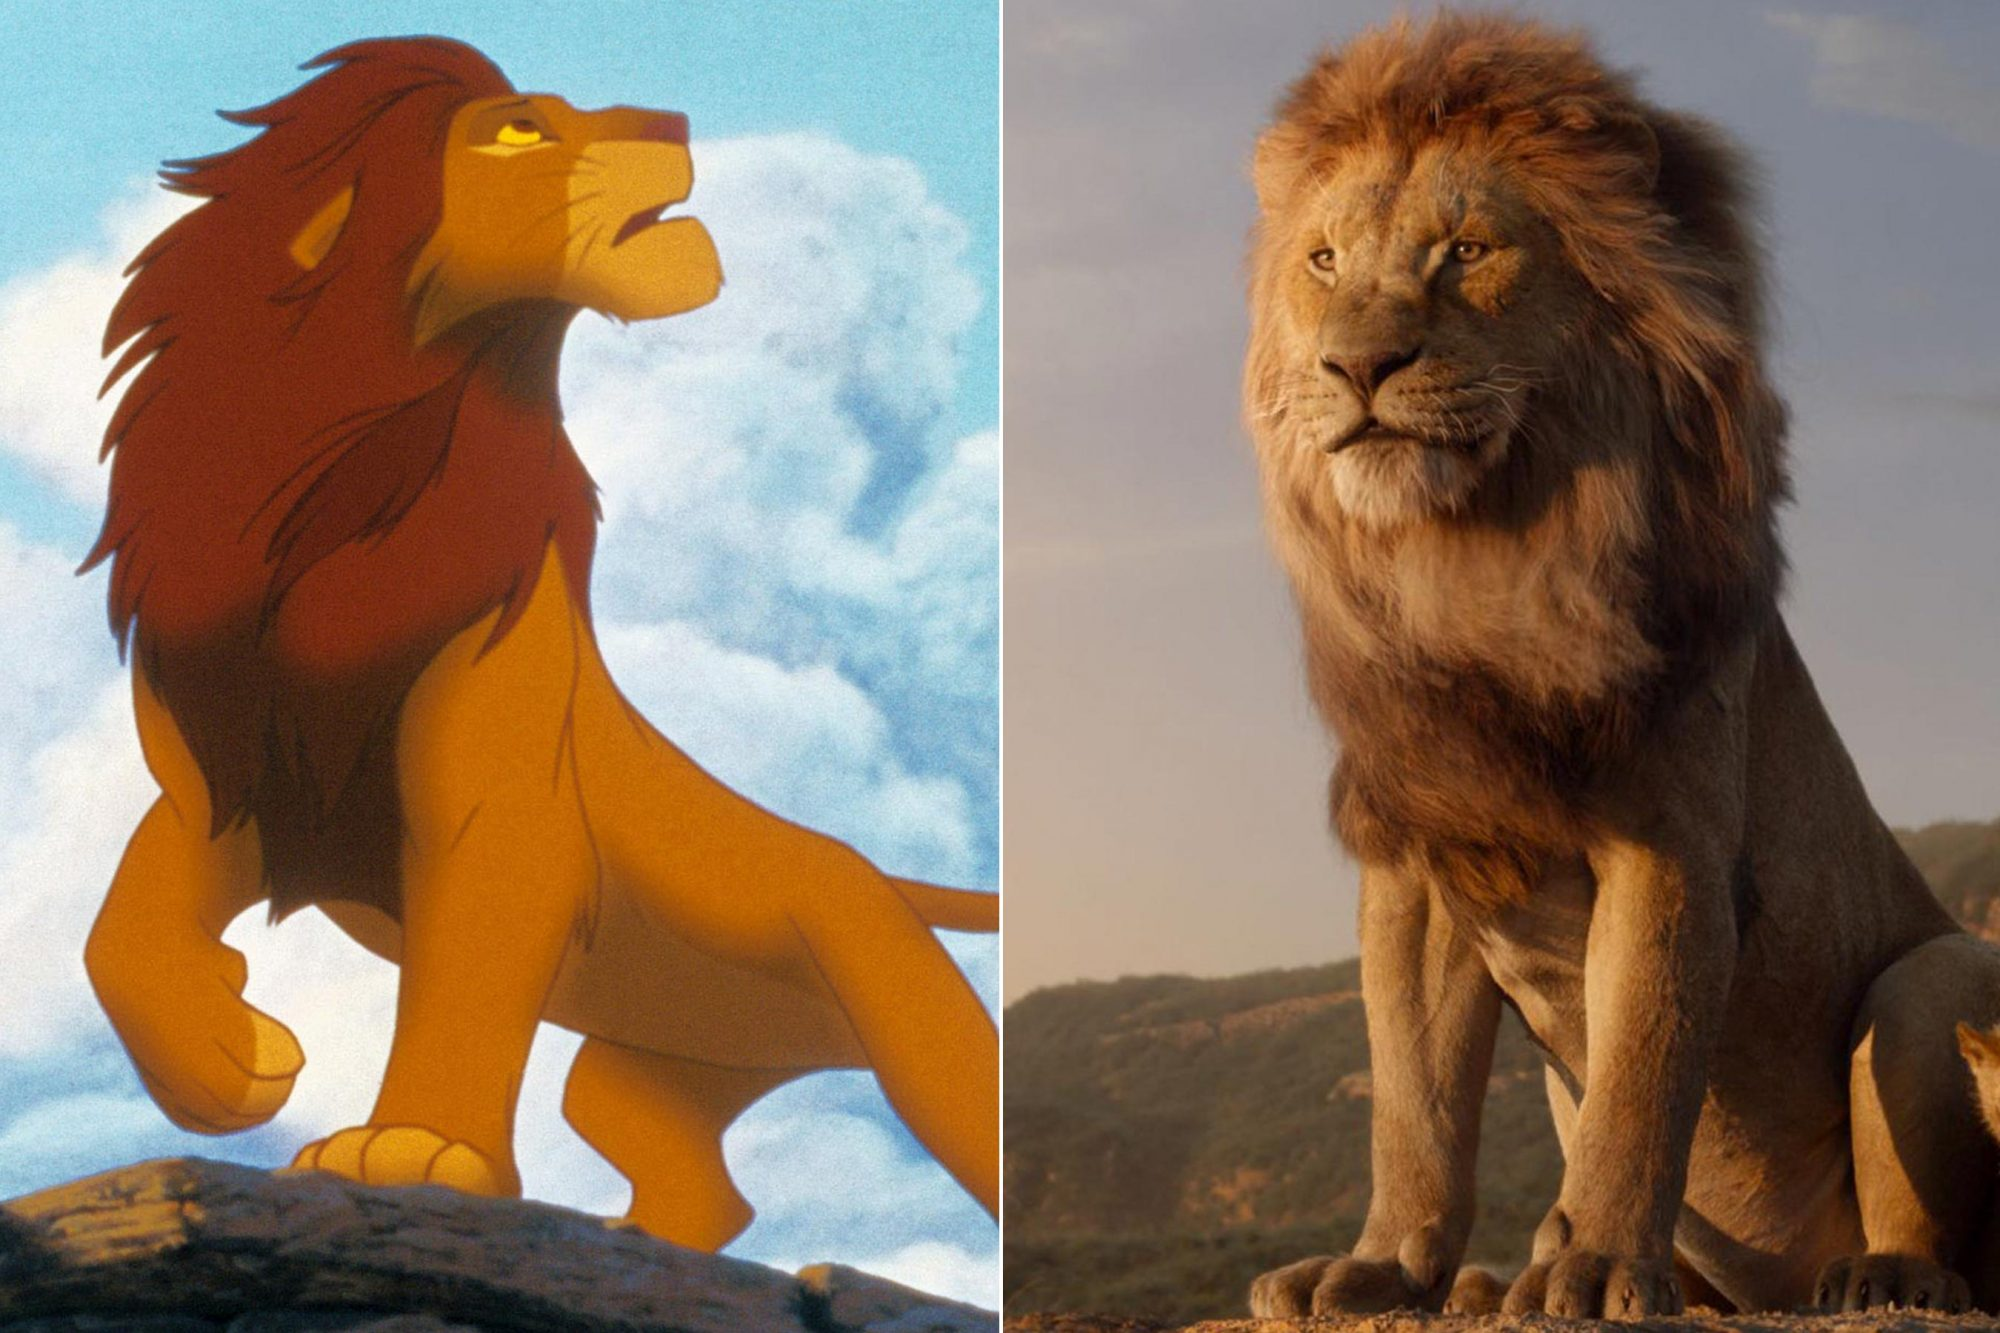 """THE LION KING, 1994. ©Buena Vista Pictures/Courtesy Everett Collection THE LION KING - Featuring the voices of James Earl Jones as Mufasa, and JD McCrary as Young Simba, Disney's """"The Lion King"""" is directed by Jon Favreau. In theaters July 29, 2019. © 2019 Disney Enterprises, Inc. All Rights Reserved."""